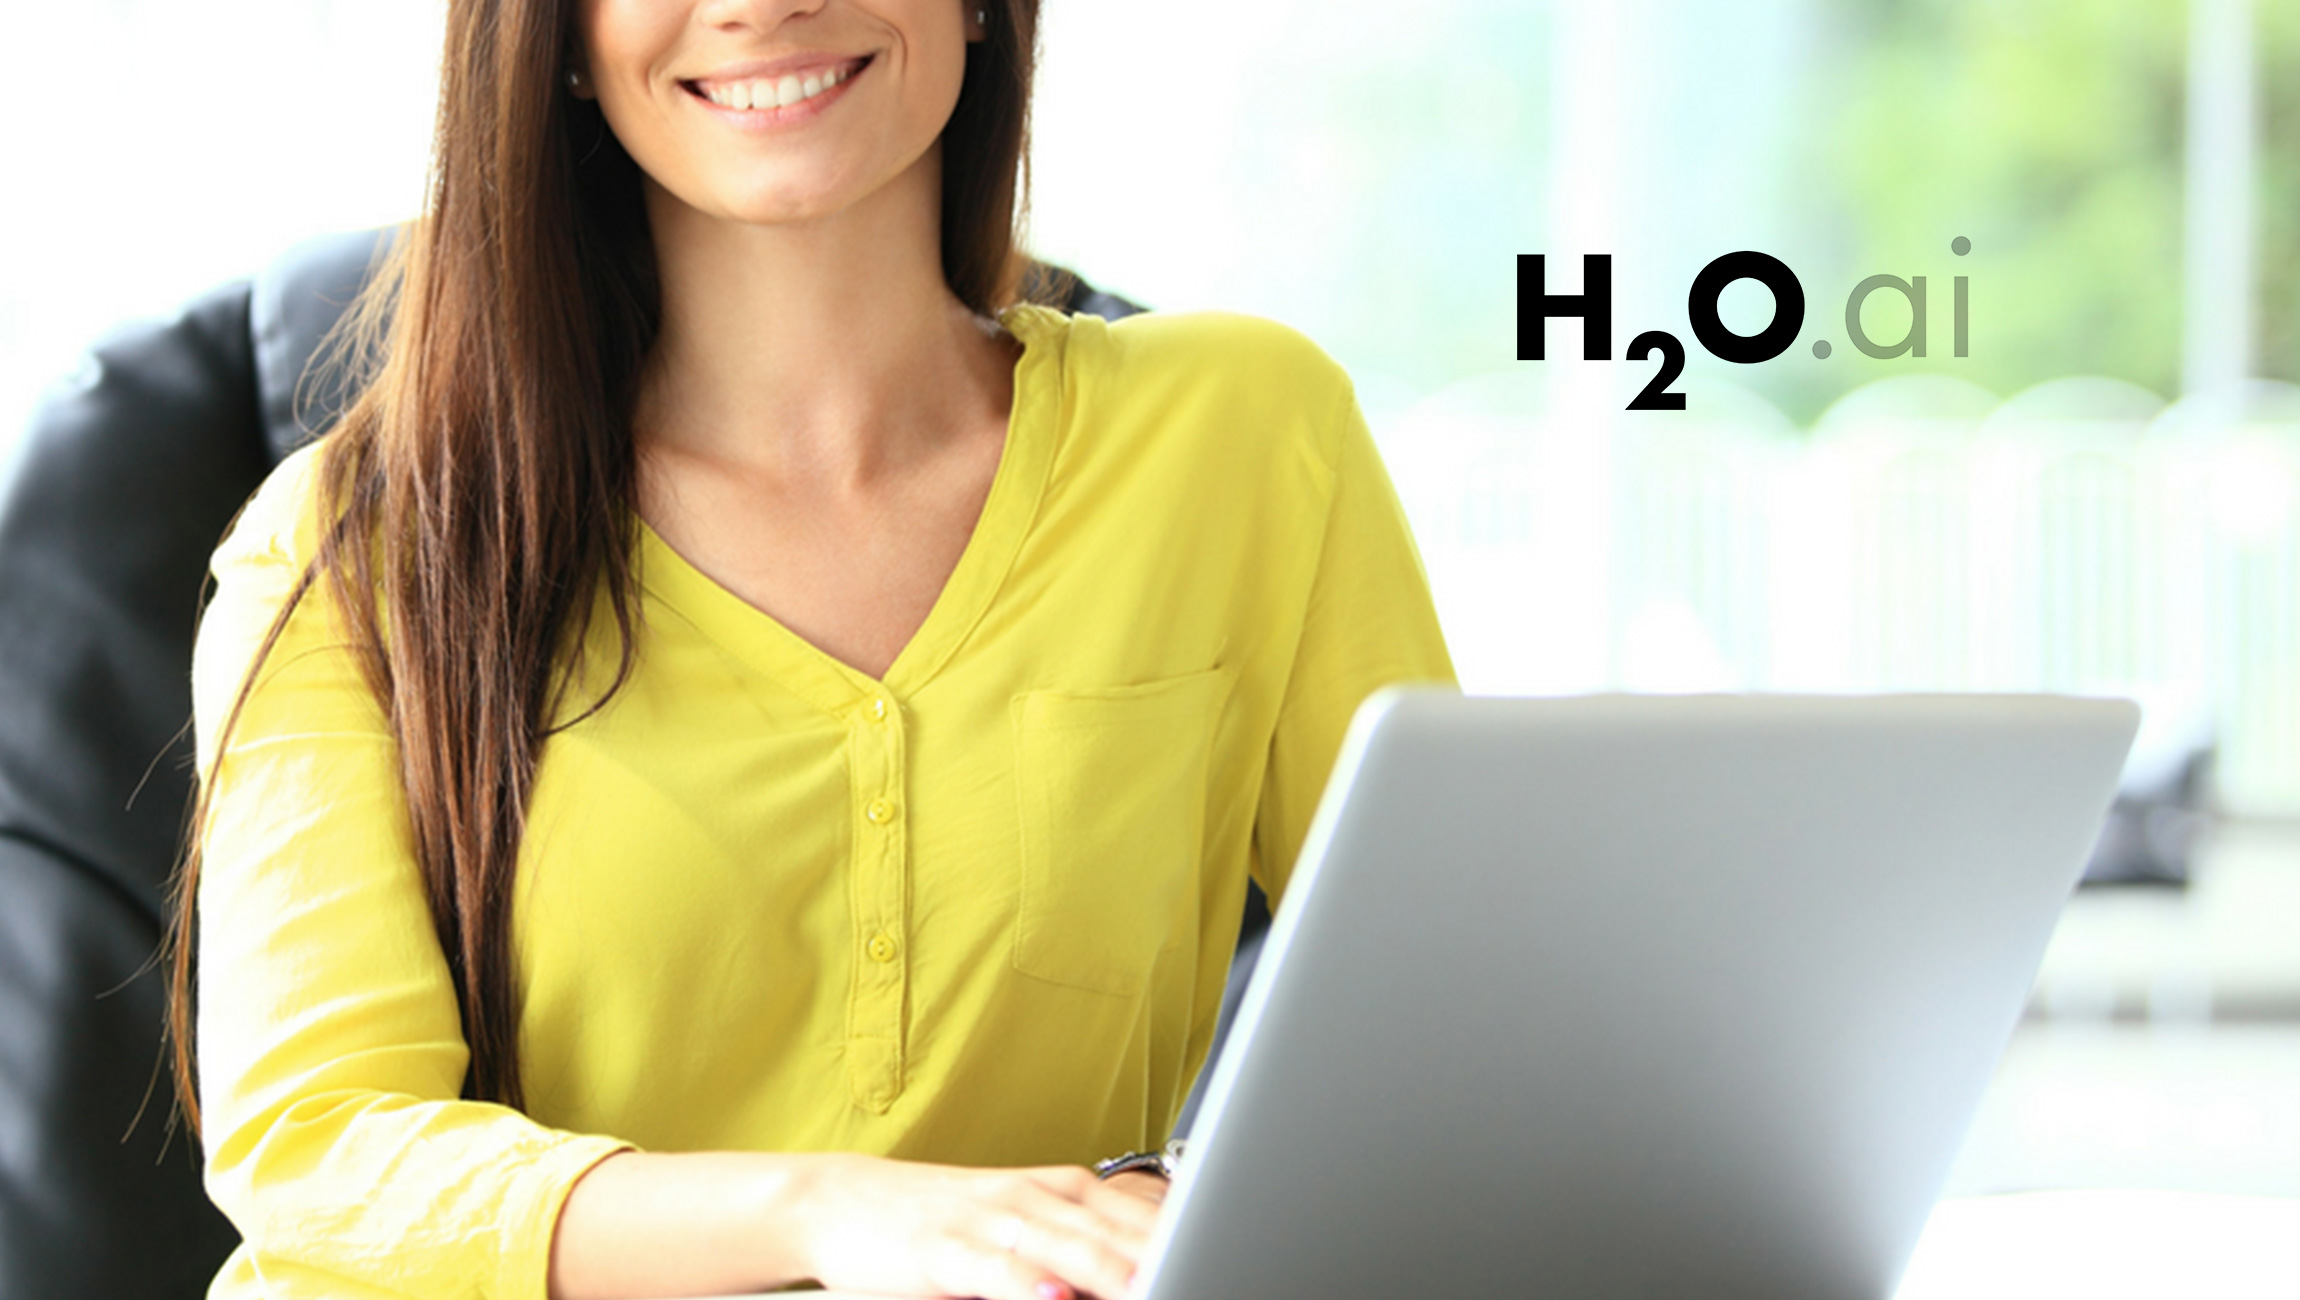 h2o ai advances leading data science and machine learning platforms